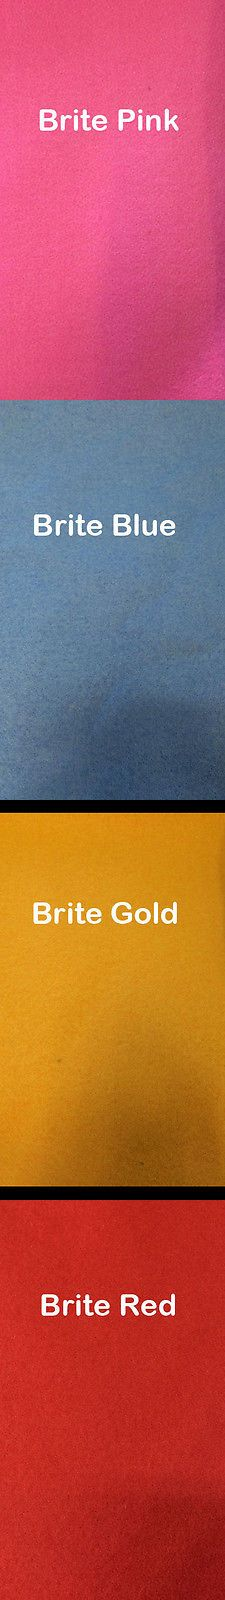 Other Billiards Accs and D cor 21210: New 8Ft Table Pool Table Cloth 4 Brite Custom Colors To Choose From -> BUY IT NOW ONLY: $130 on eBay!